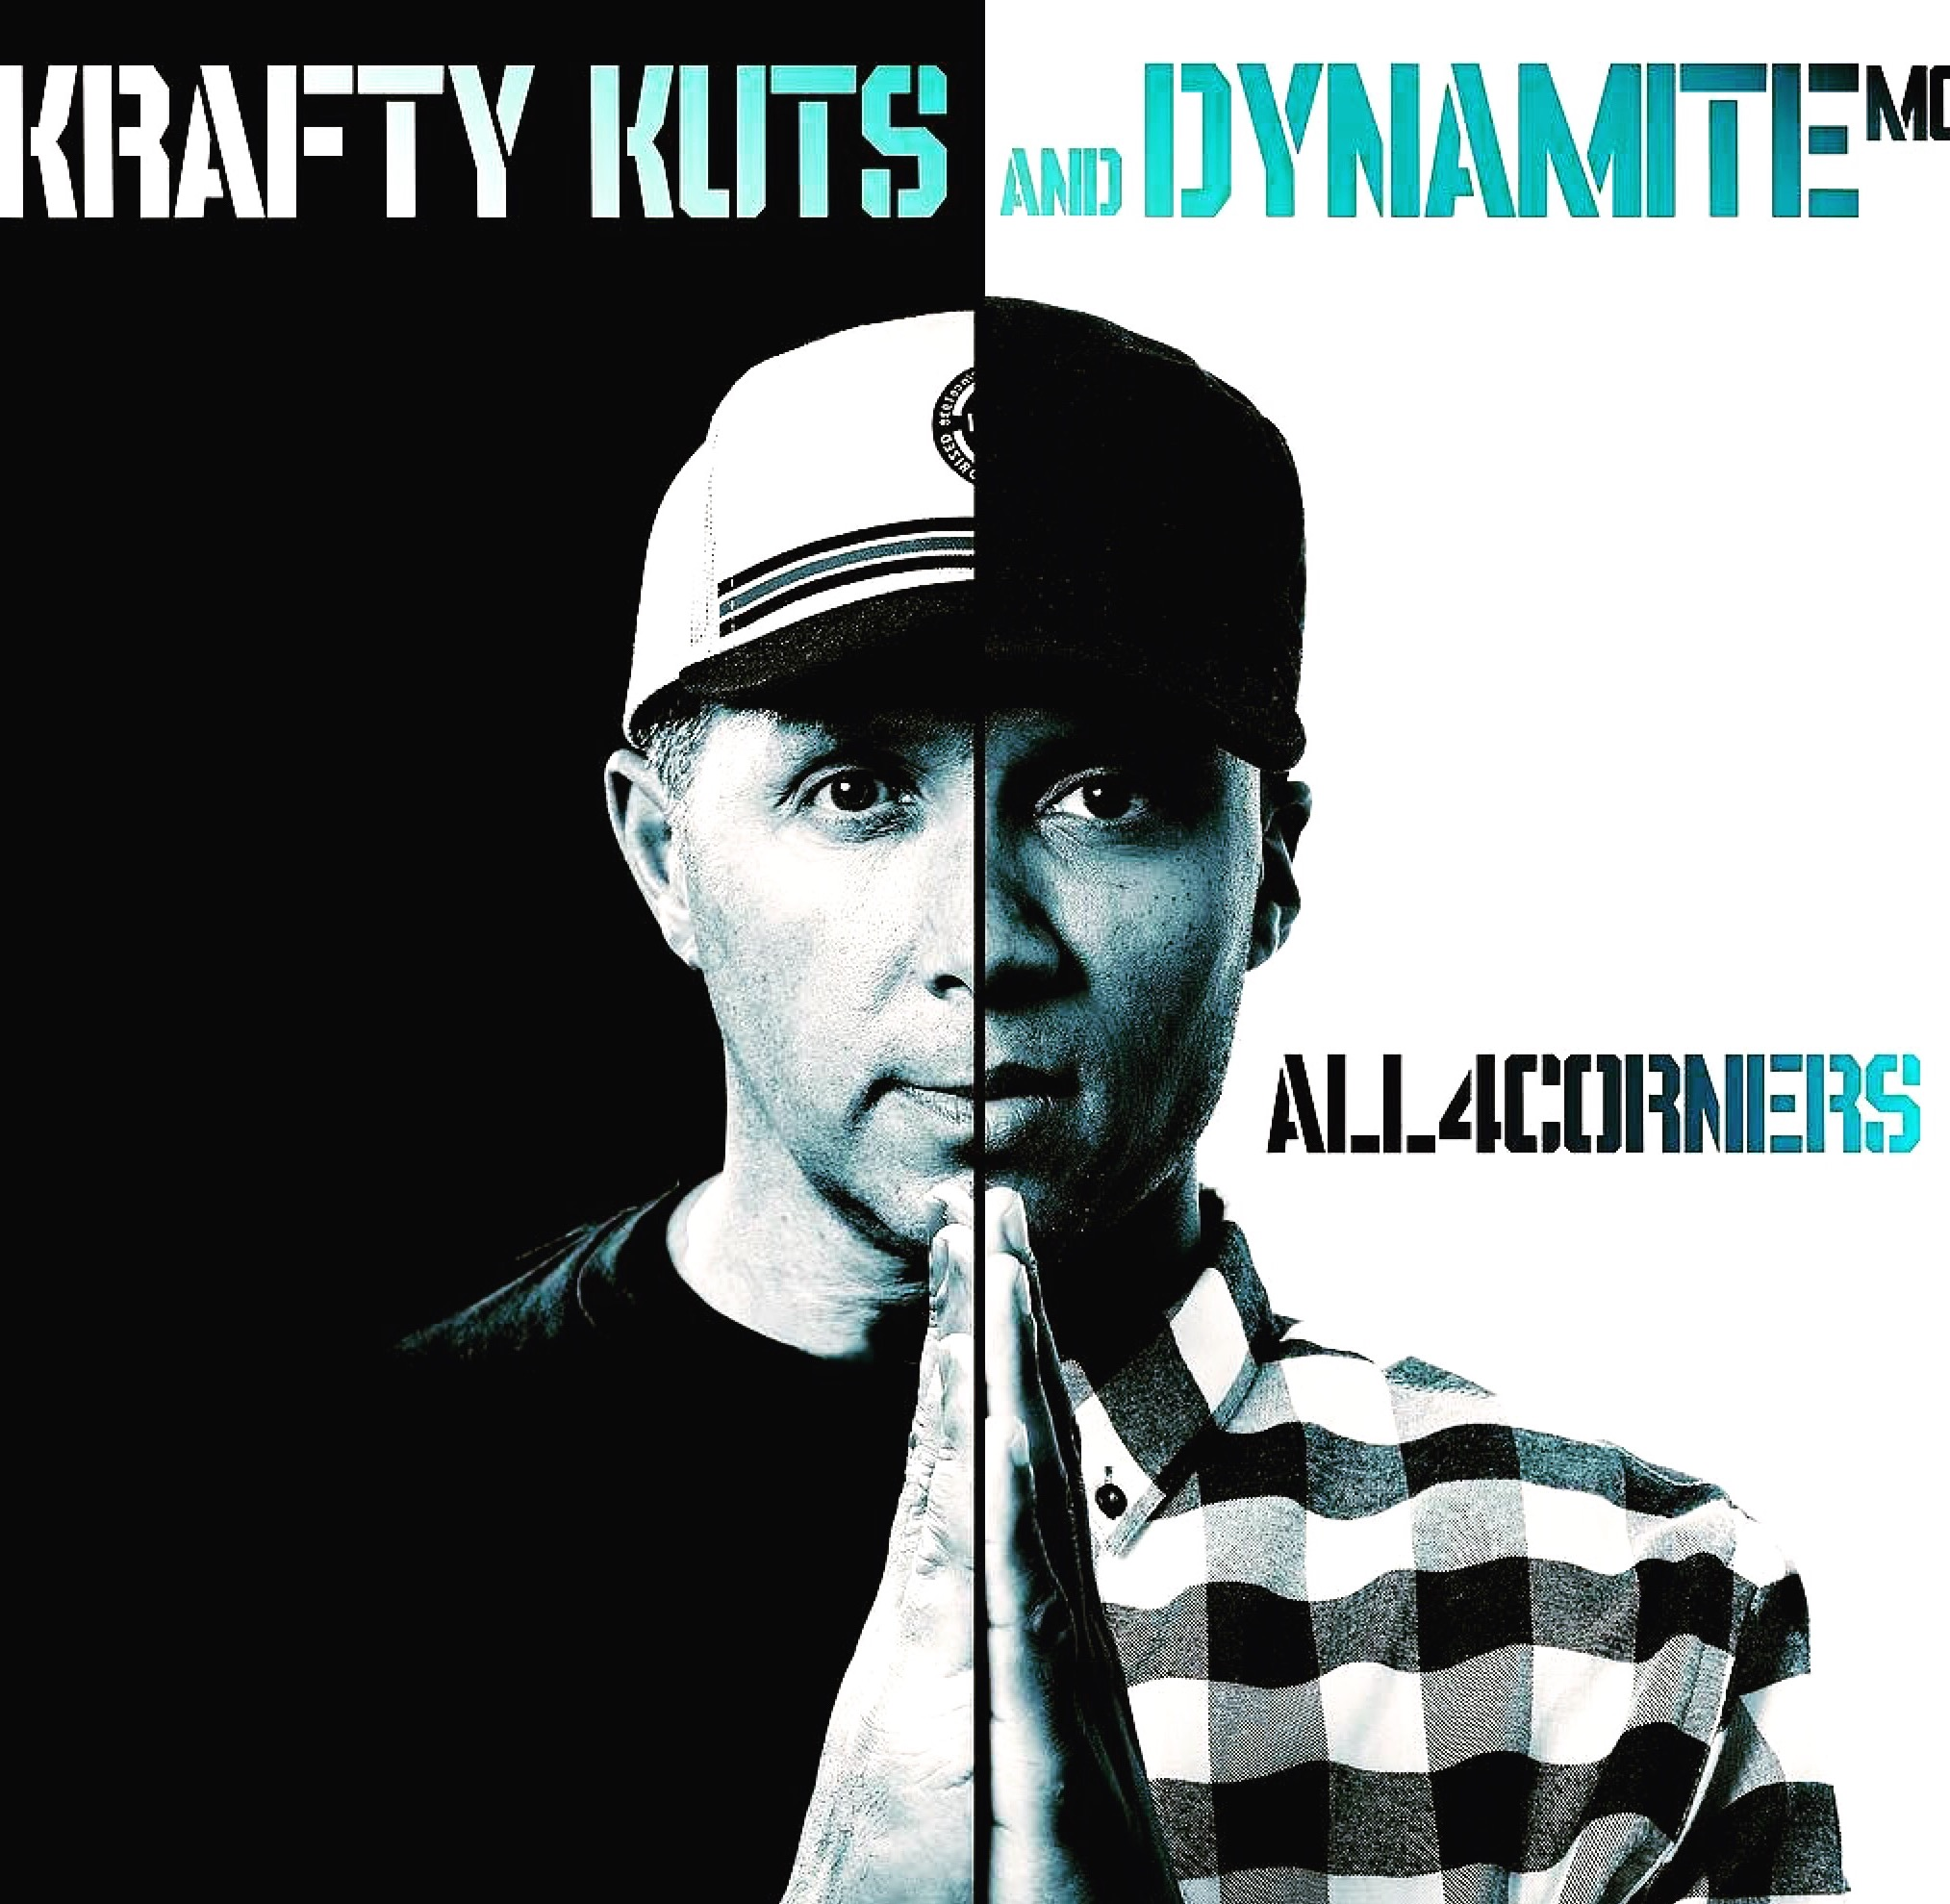 Krafty Kuts and Dynamite MC Album